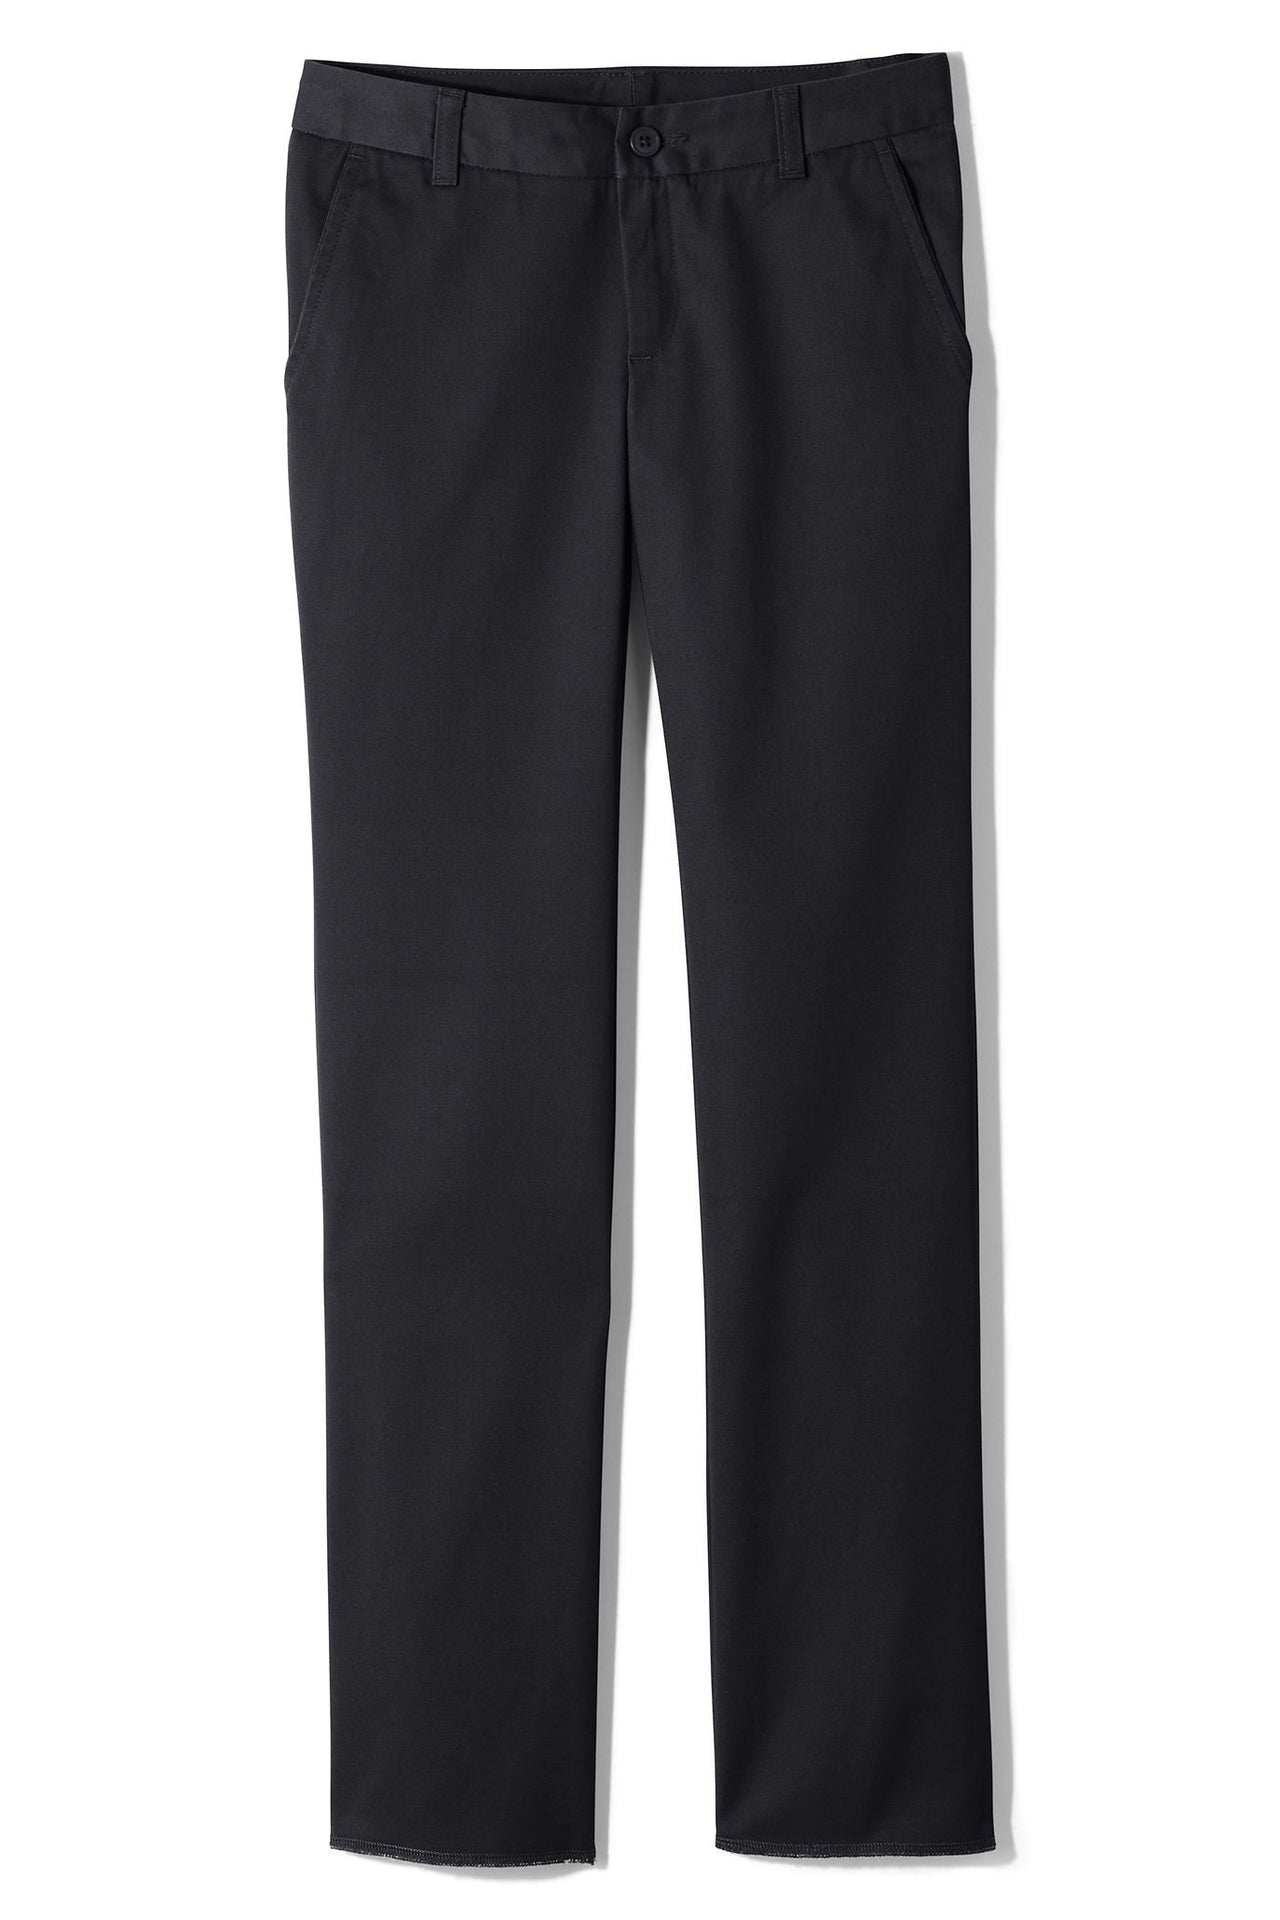 Girls' Plain Front Blend Chinos